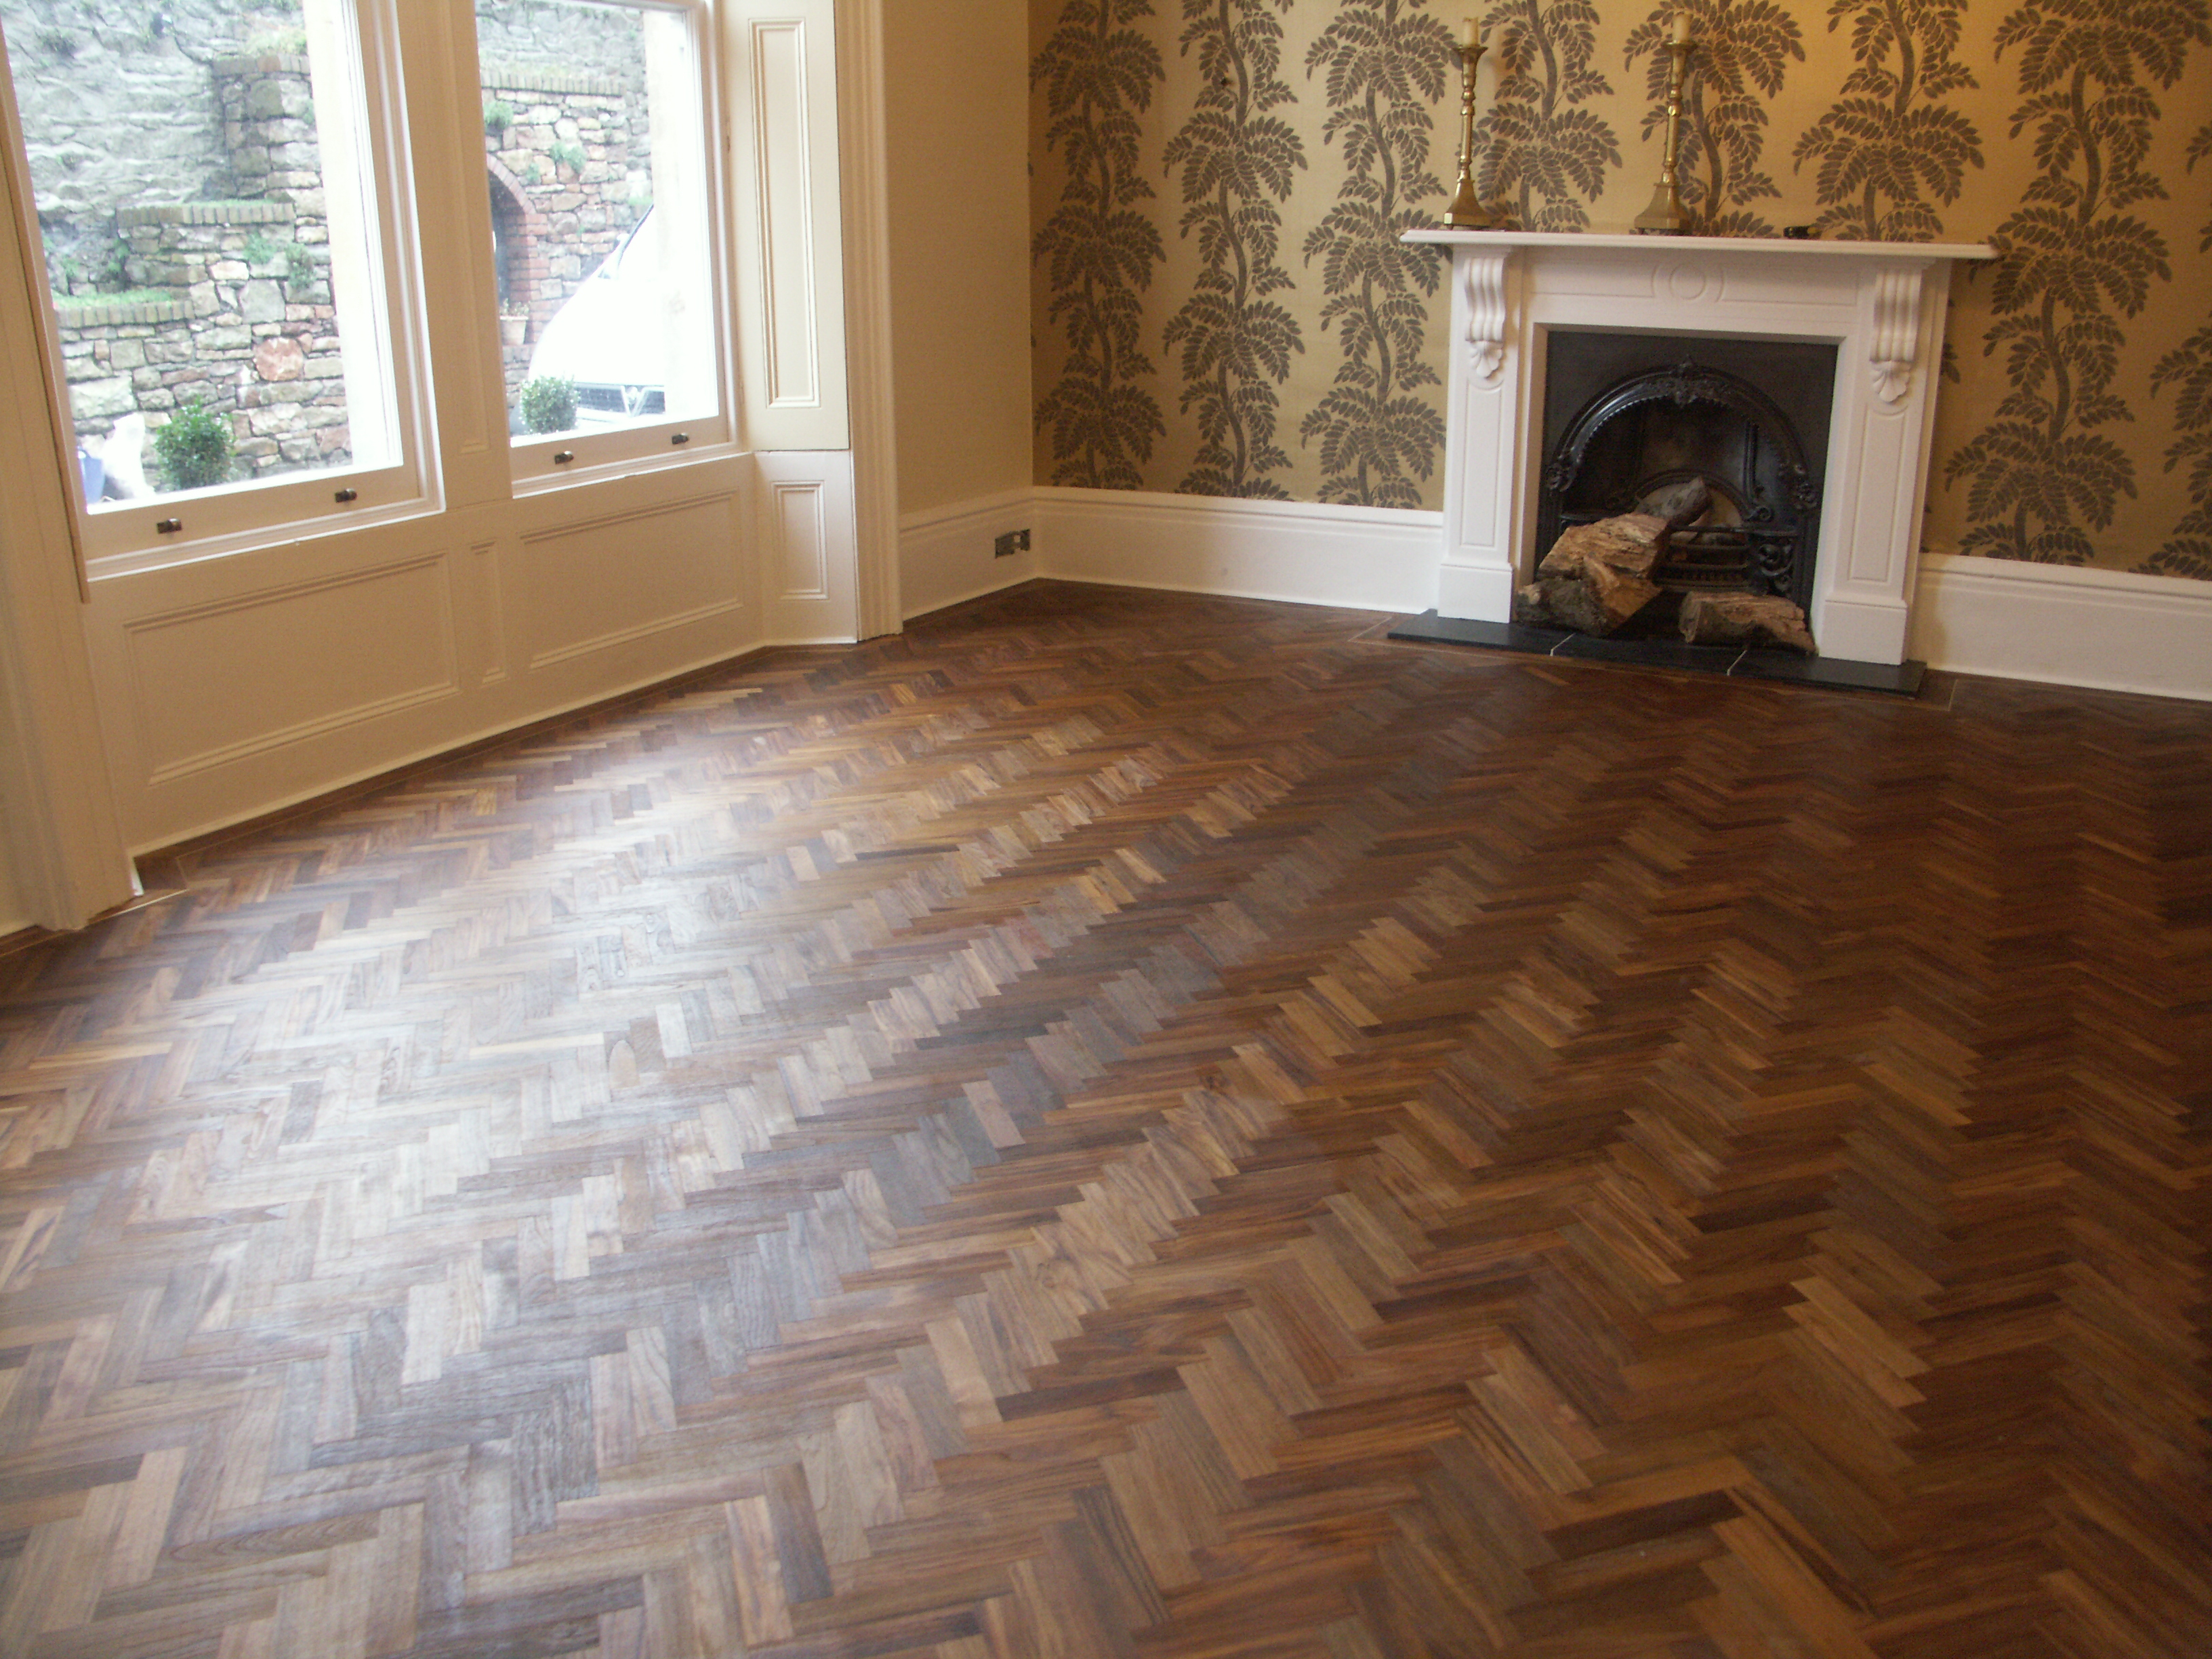 Teak Herringbone Floor Hicraft Wooden Flooring Ltd